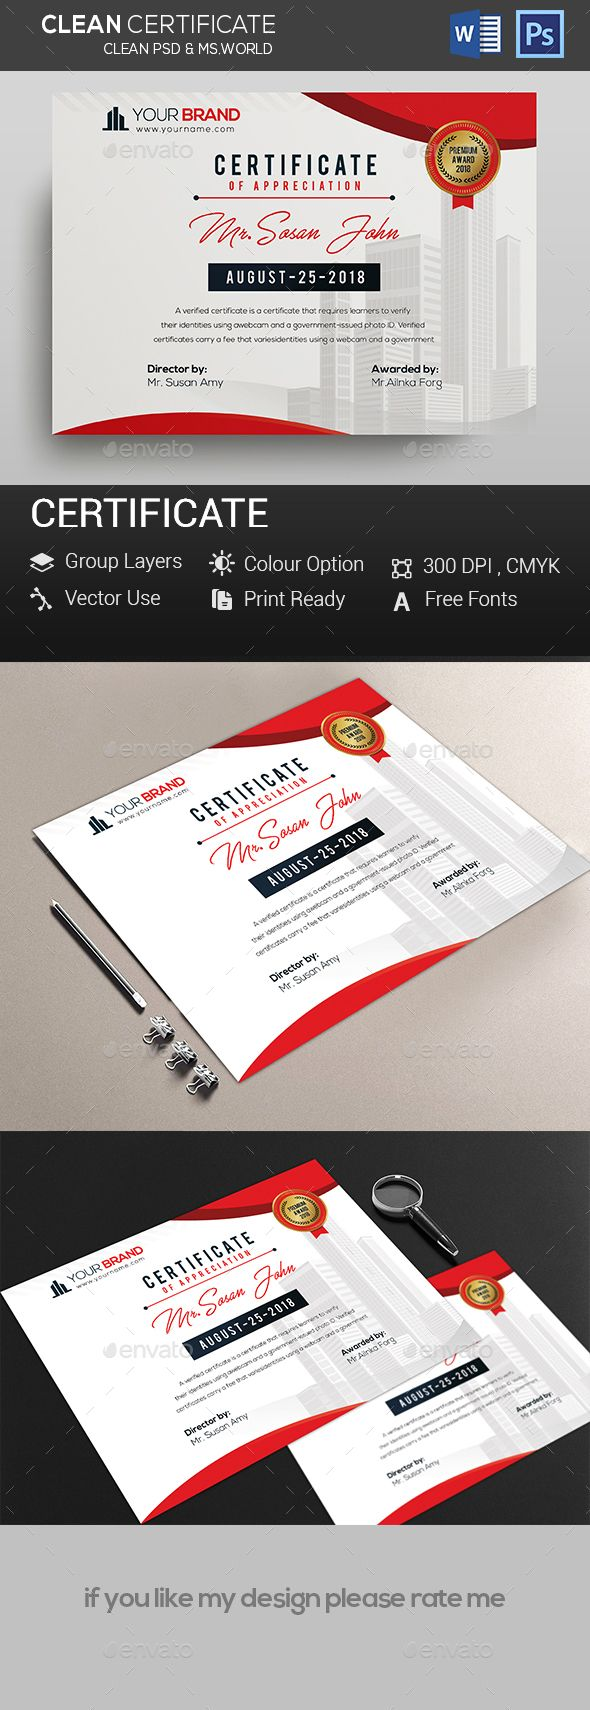 Certificates Certificate Template psd file and ms-ward file include Fully Clean Certificate A4 Paper Size With Bleeds Quick and easy to customize templates Any Size Changes Fully Group Layer Free Fonts Use Fully Vector